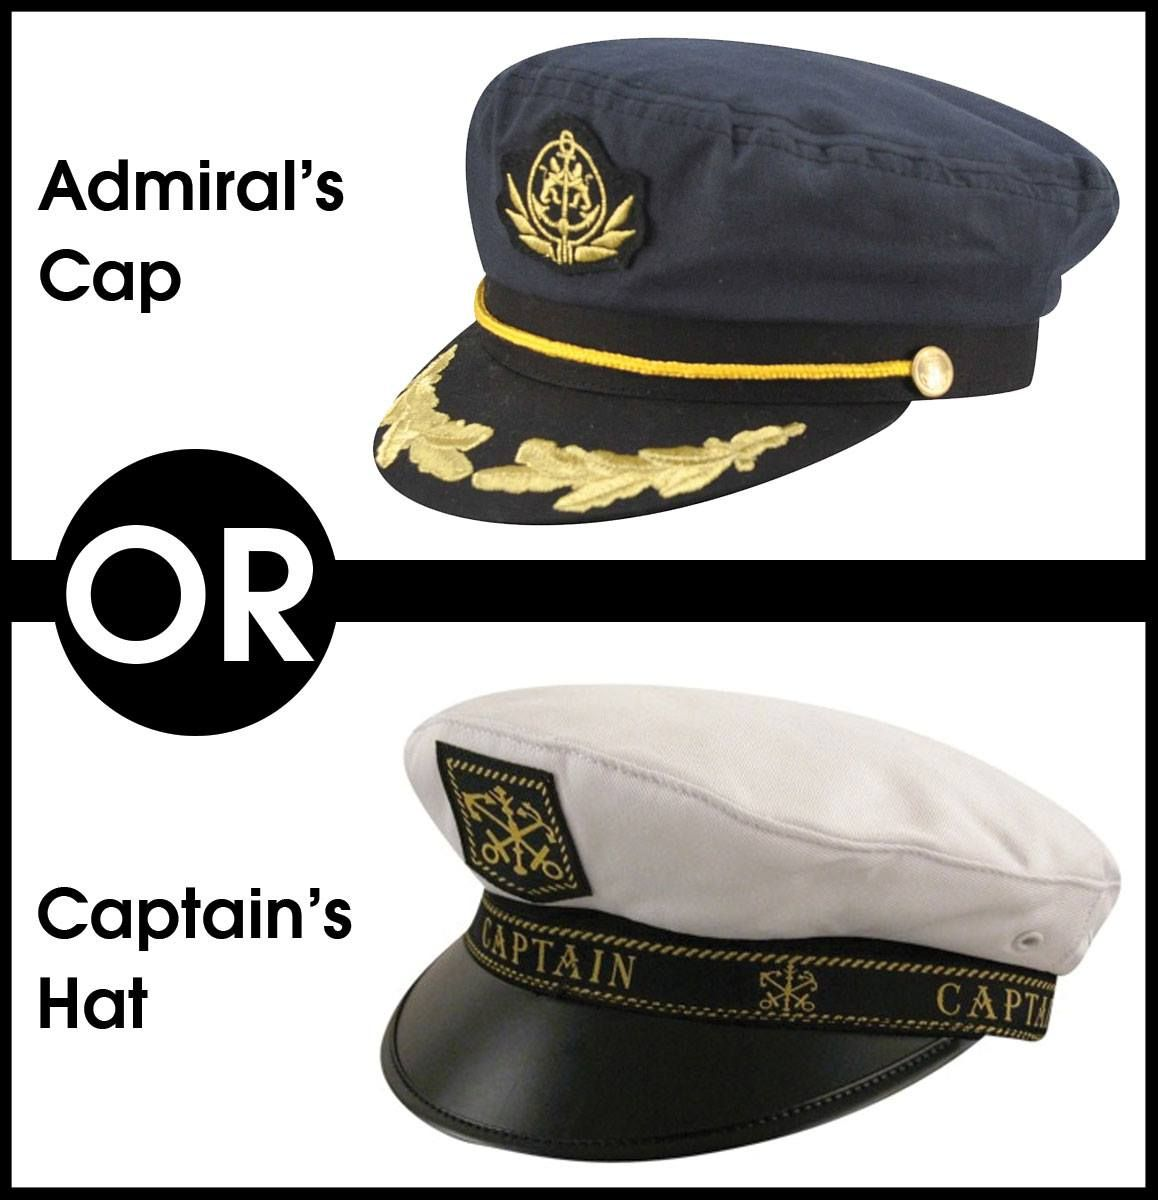 72546b7e58 What s your favorite Fisherman hat look  Admiral s Cap or Captain s hat